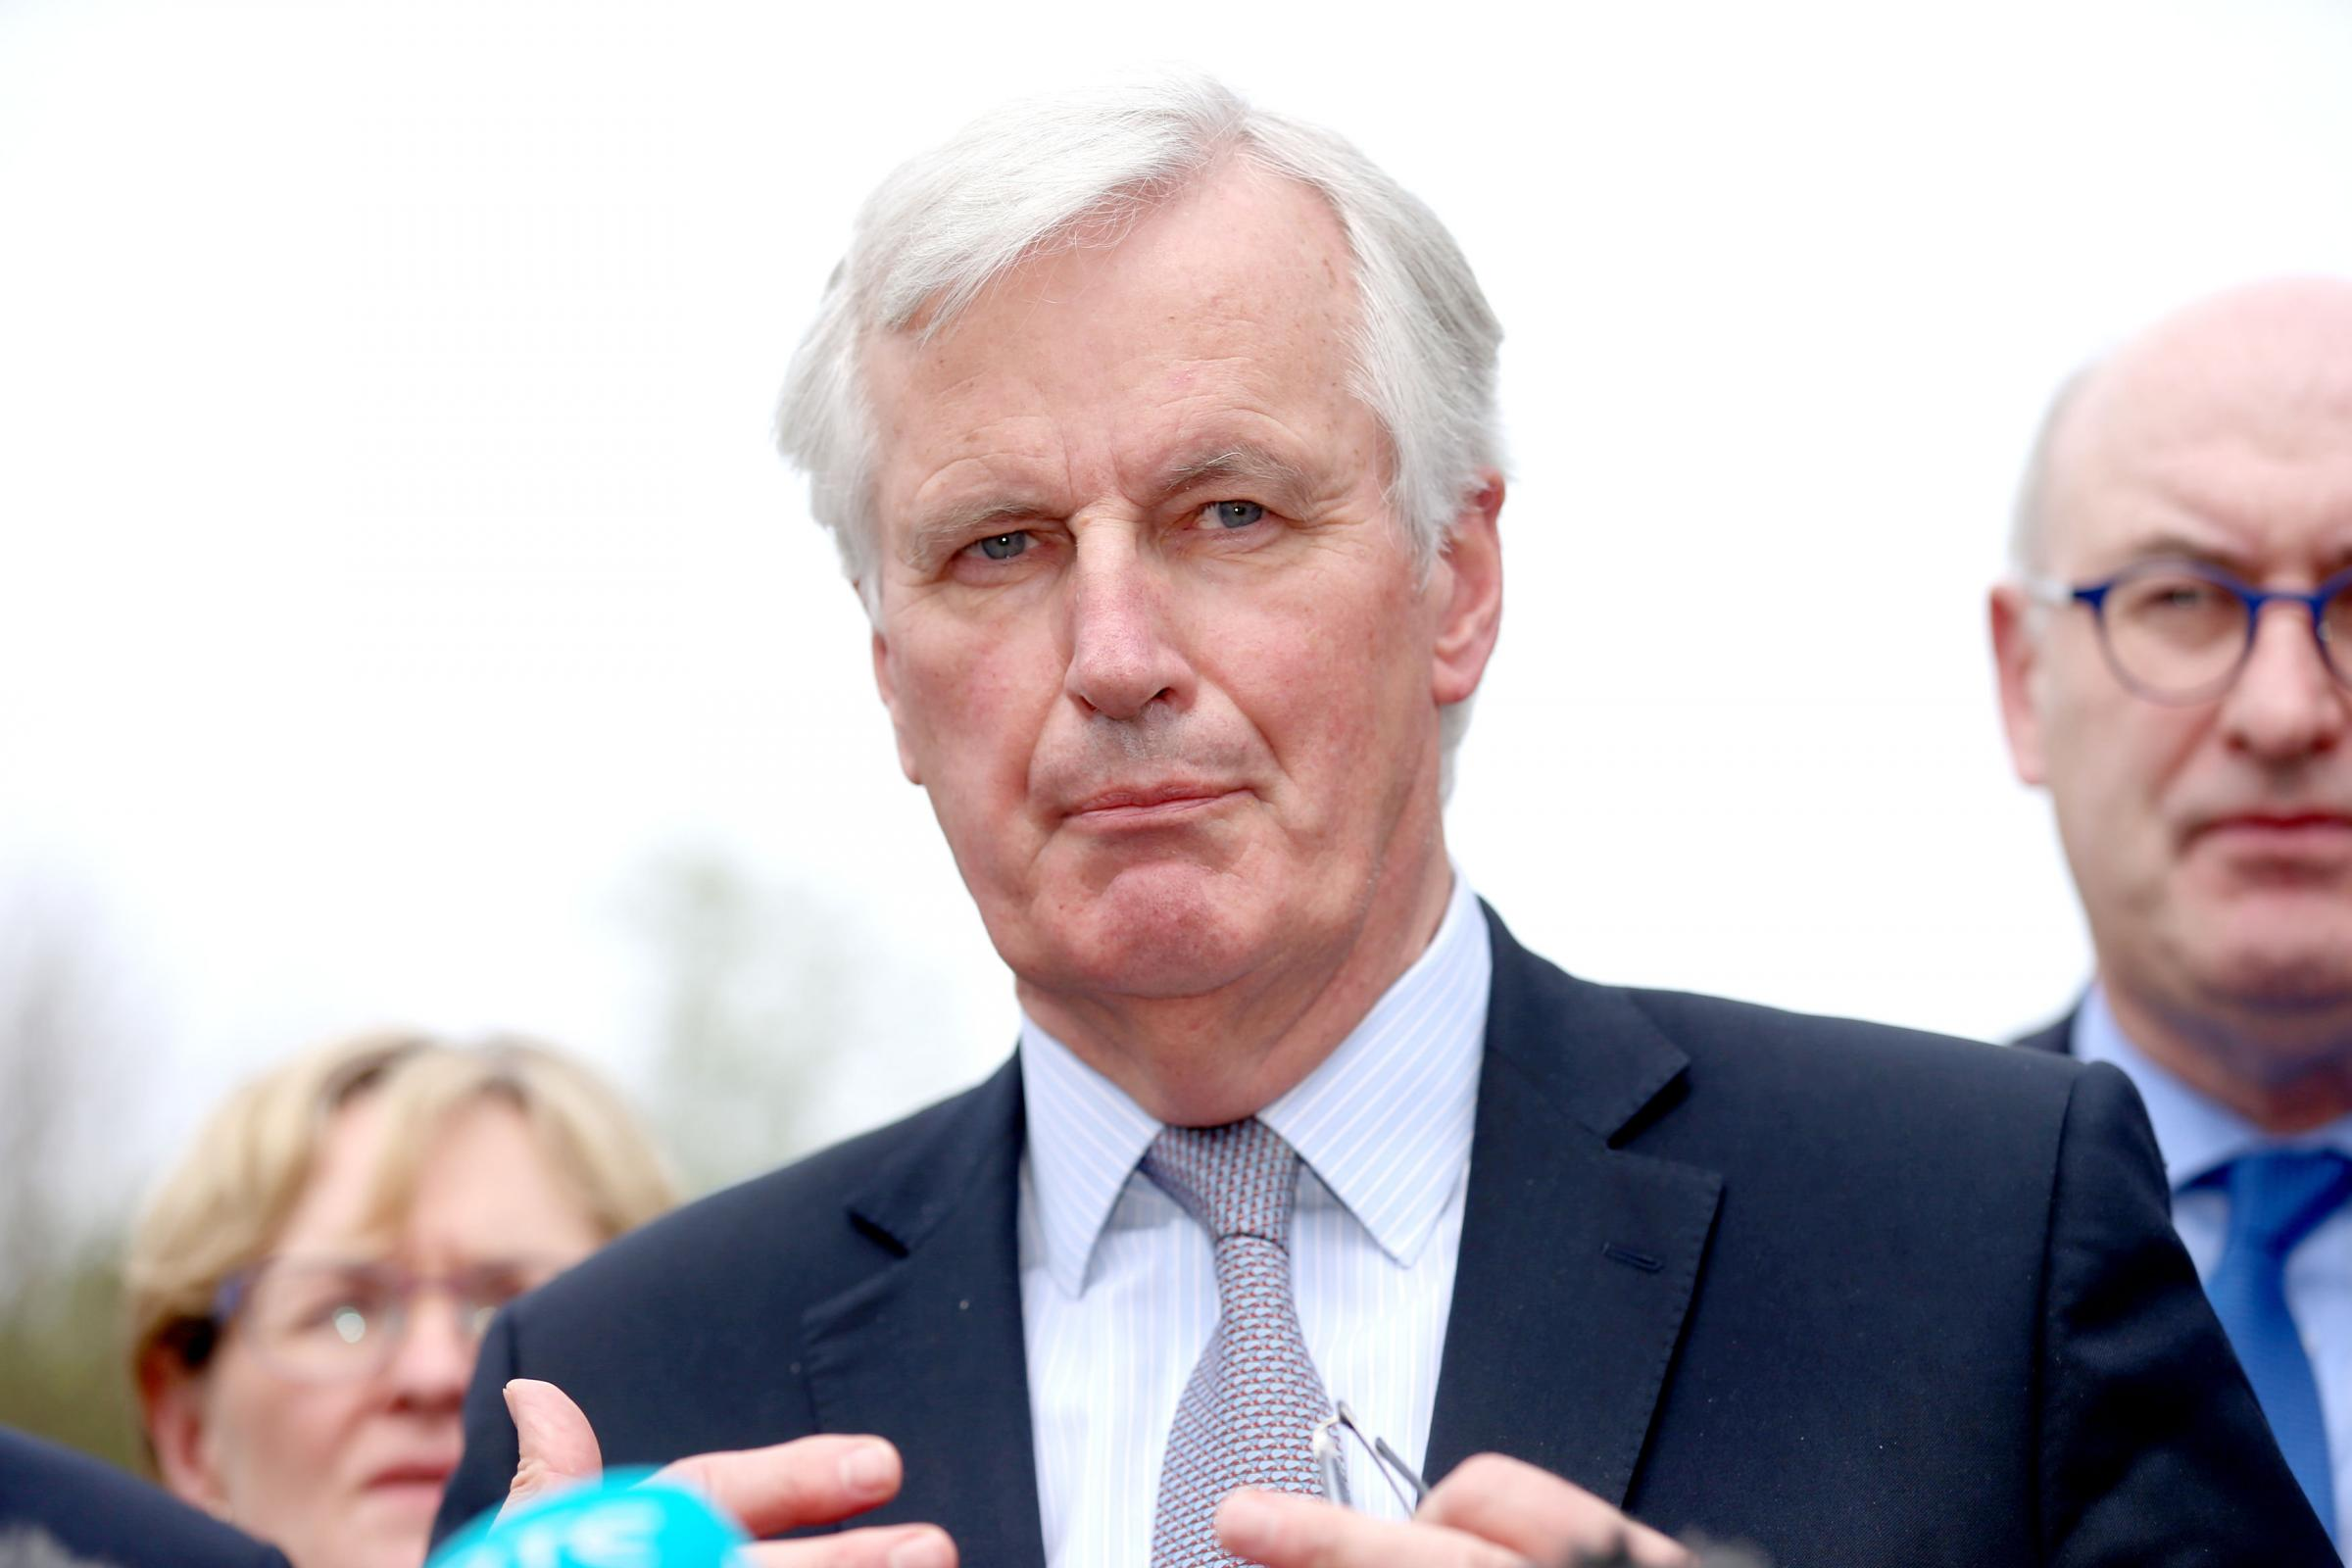 Contrast: EU chief negotiator Michel Barnier has taken a determined and steady position